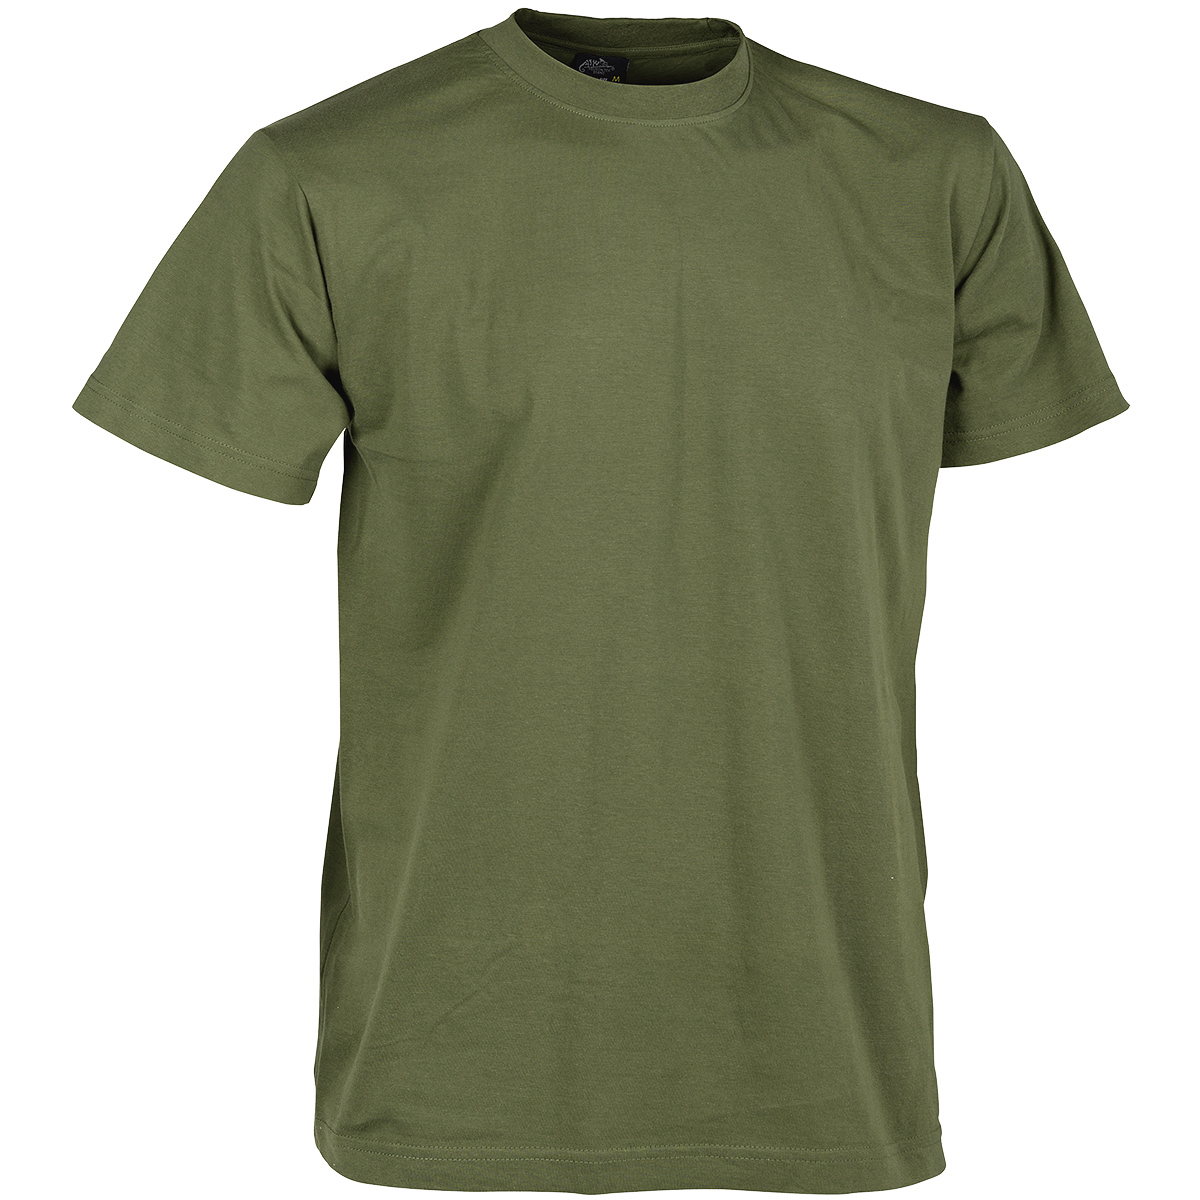 Details about Helikon Army Patrol Mens T-Shirt Military Work Wear Top  Cotton US Green OD S-3XL 14c39b8acb4